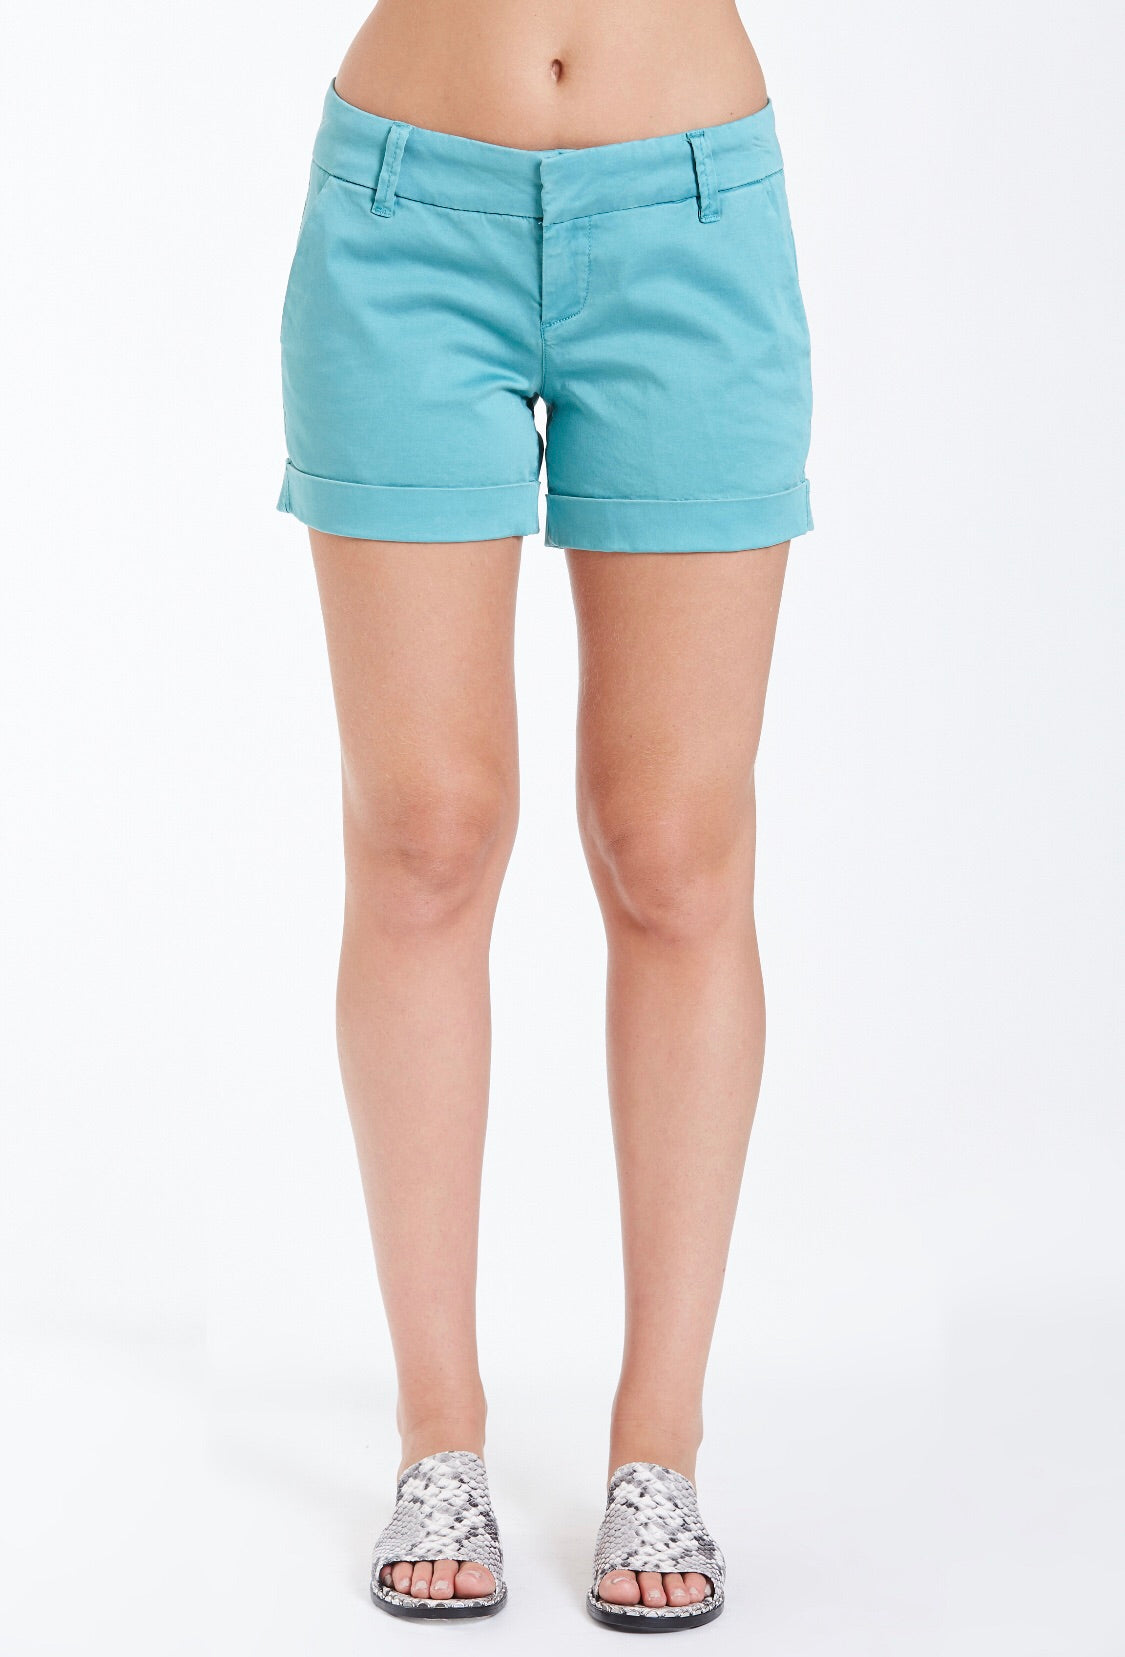 Dear John Hampton Shorts-Laguna Blue